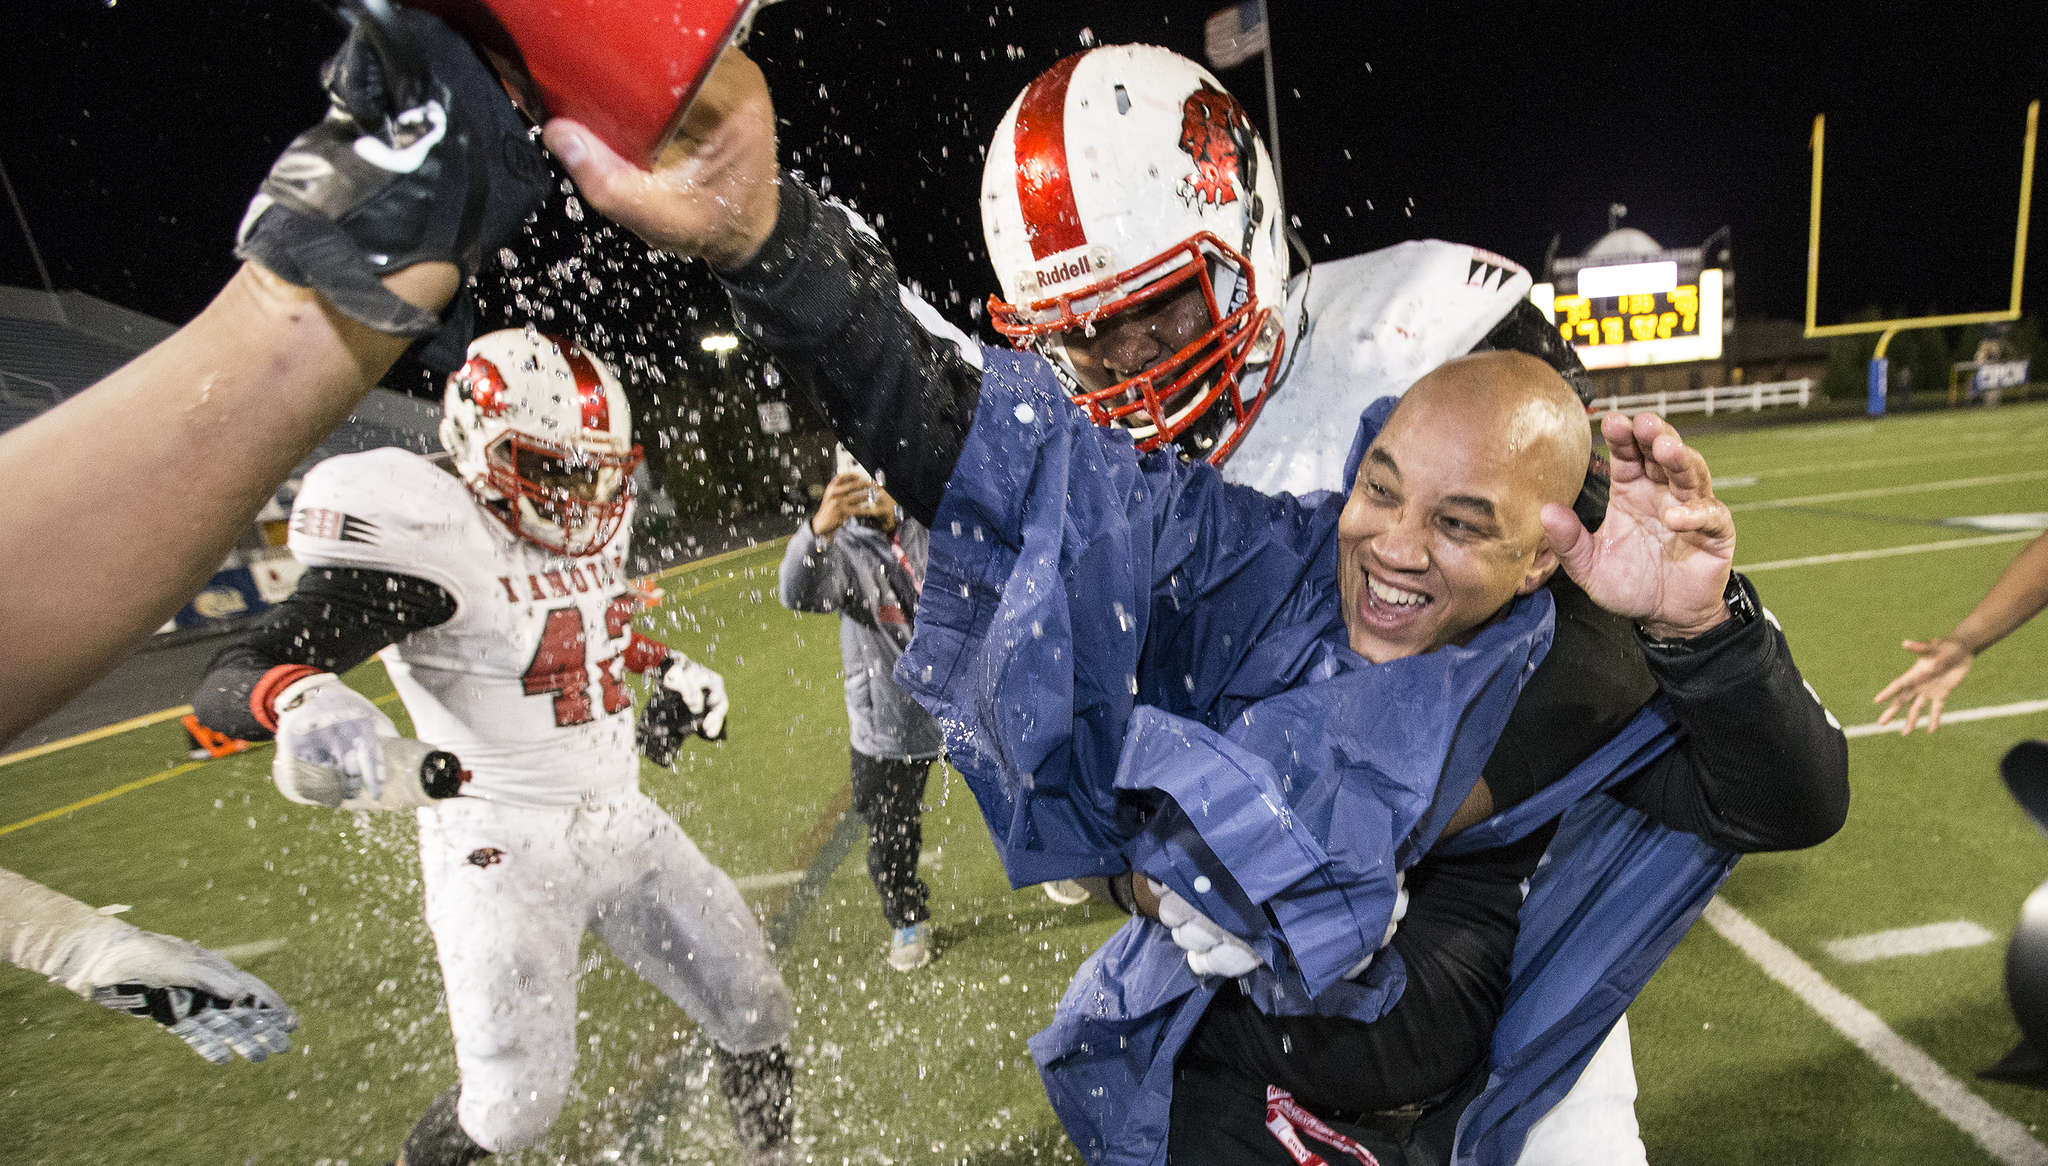 Imhotep head coach Albie Crosby gets the requisite victory shower in the final minutes of the Panthers´ 40-3 victory over Erie Cathedral Prep in the Class 3A state championship game Dec. 19. Crosby was named state 3A coach of the year by Pa. football writers.